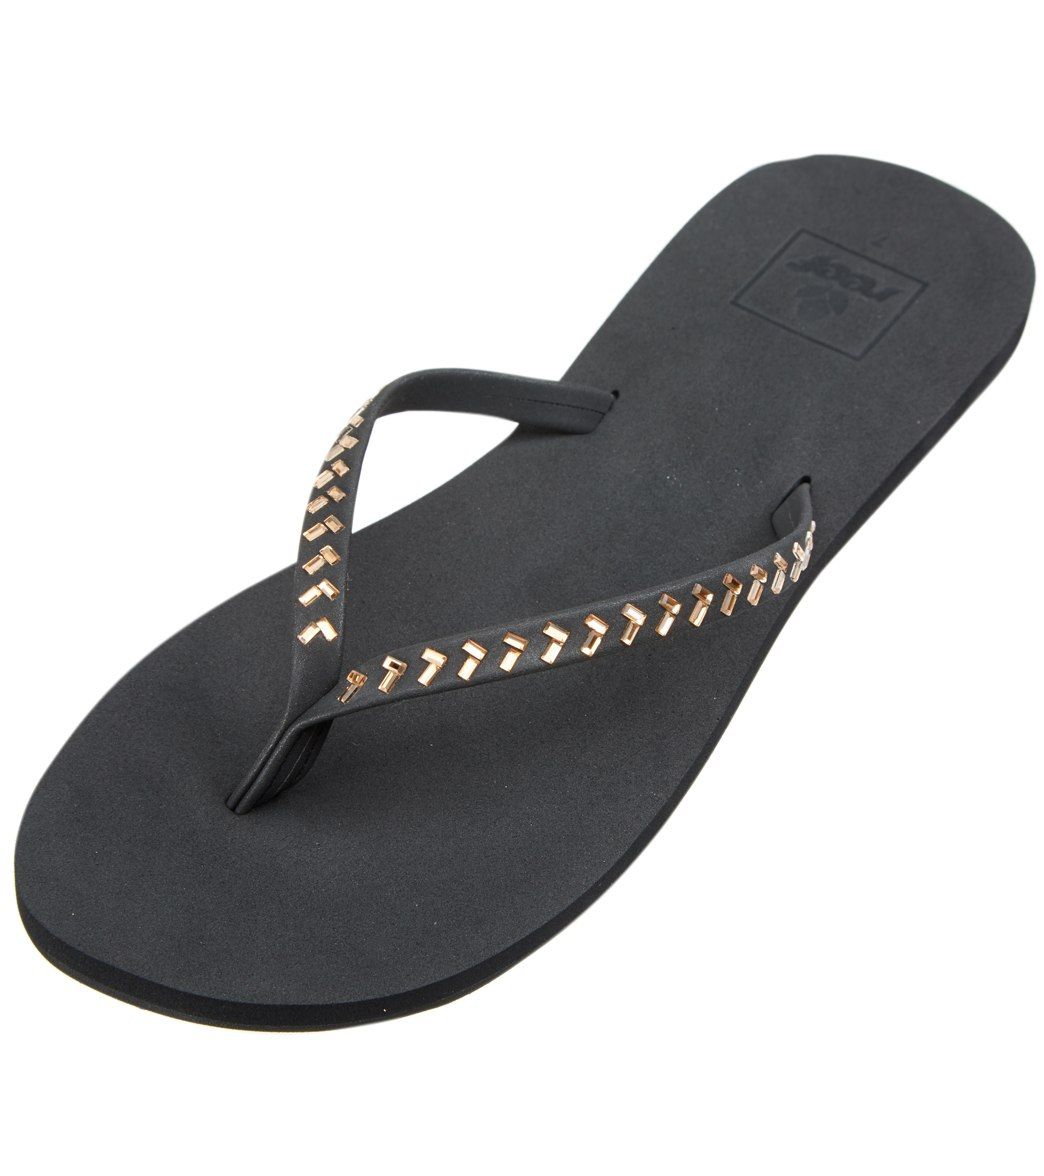 f7f9260091e7 Reef Women s Bliss Embellished Flip Flop at SwimOutlet.com